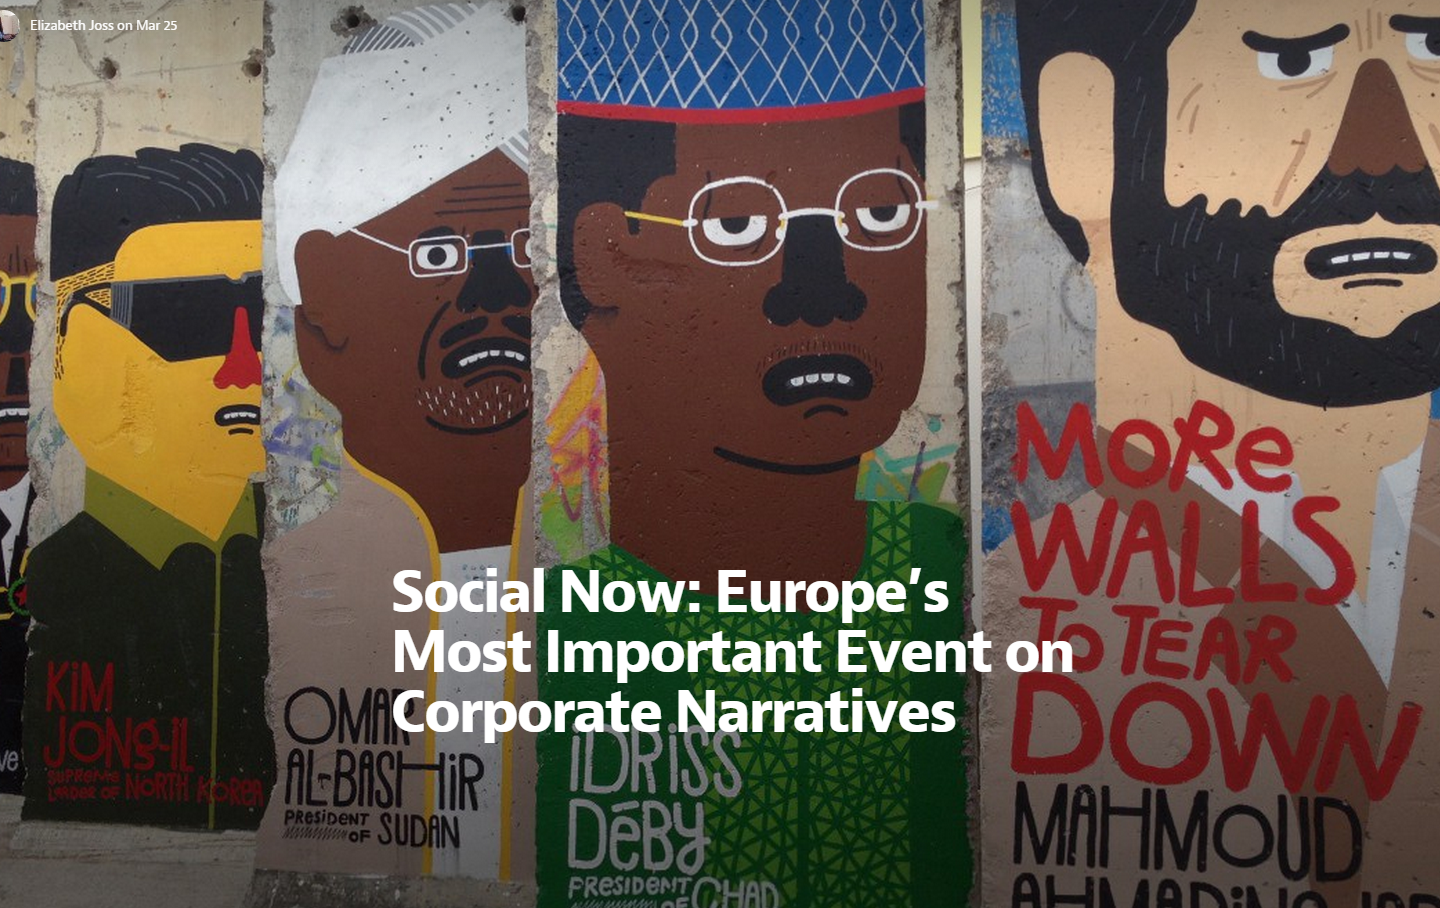 Opinion Piece - Social Now: Europe's Most Important Event on Corporate Narratives (Medium, 2014)